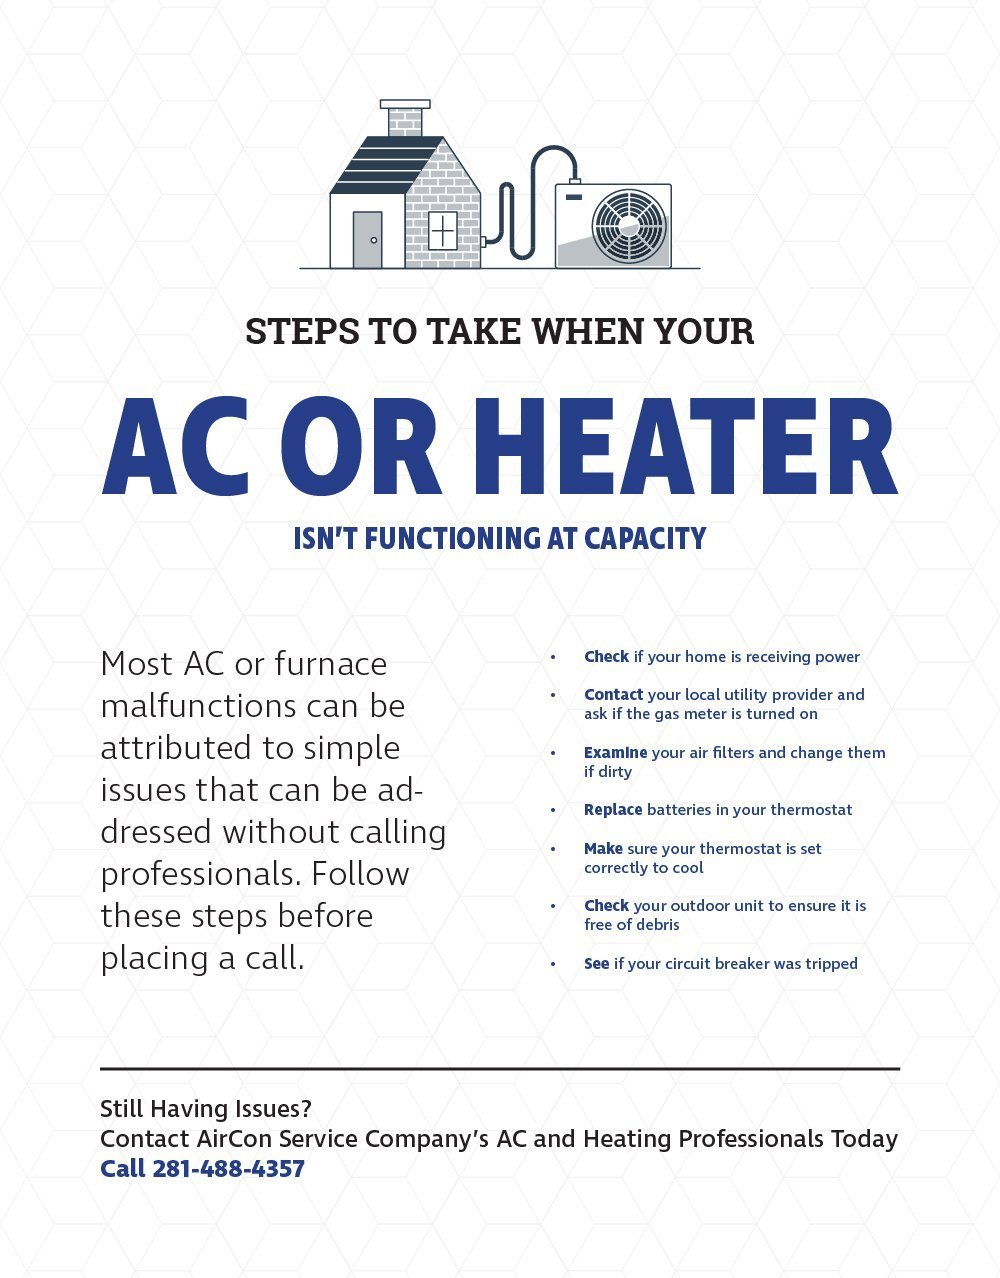 Try these steps if your AC or heater isn't working | AirCon Service Company Houston